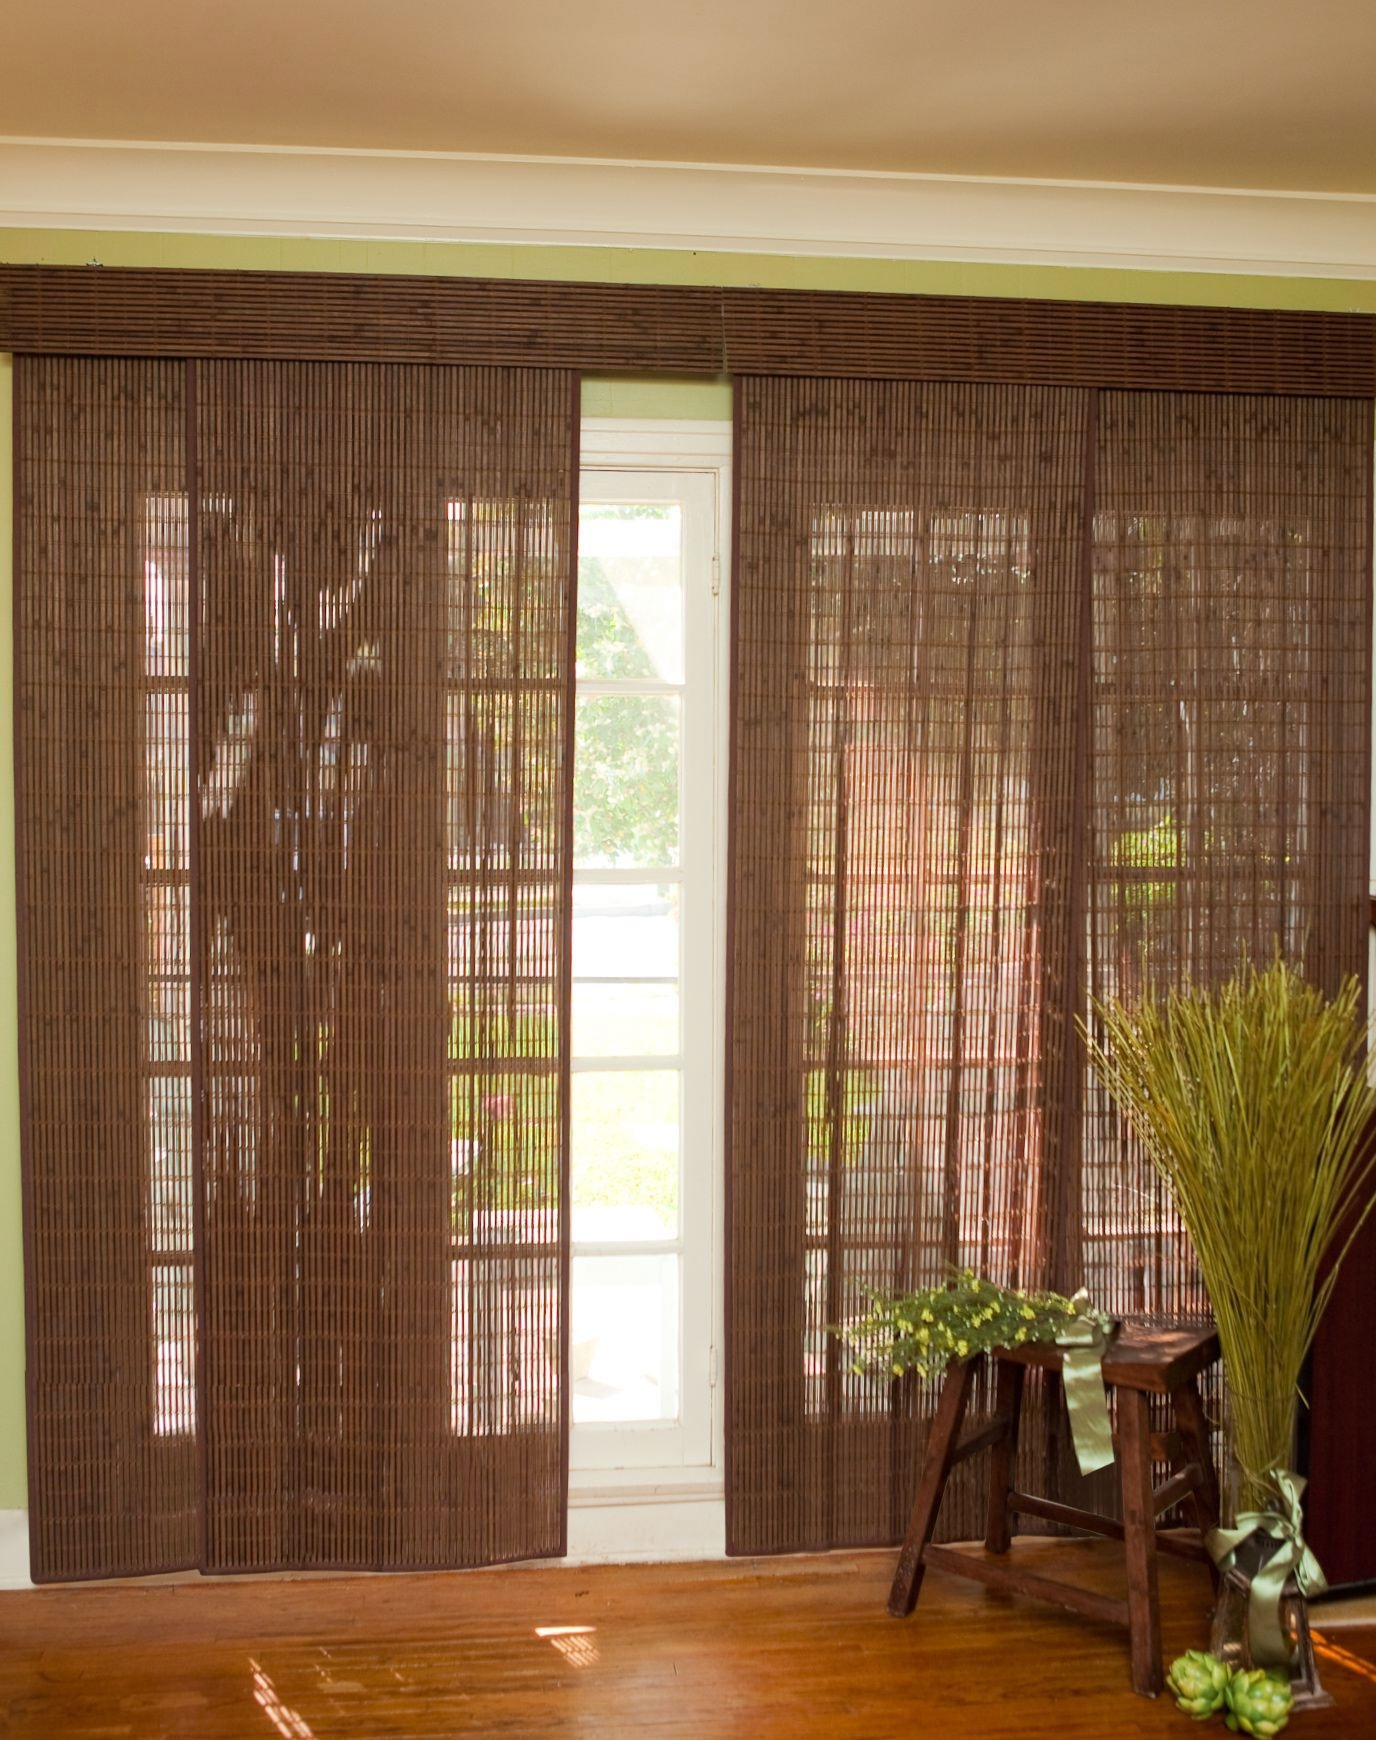 Bamboo Slider Panel Blinds For Patio Doors1376 X 1740